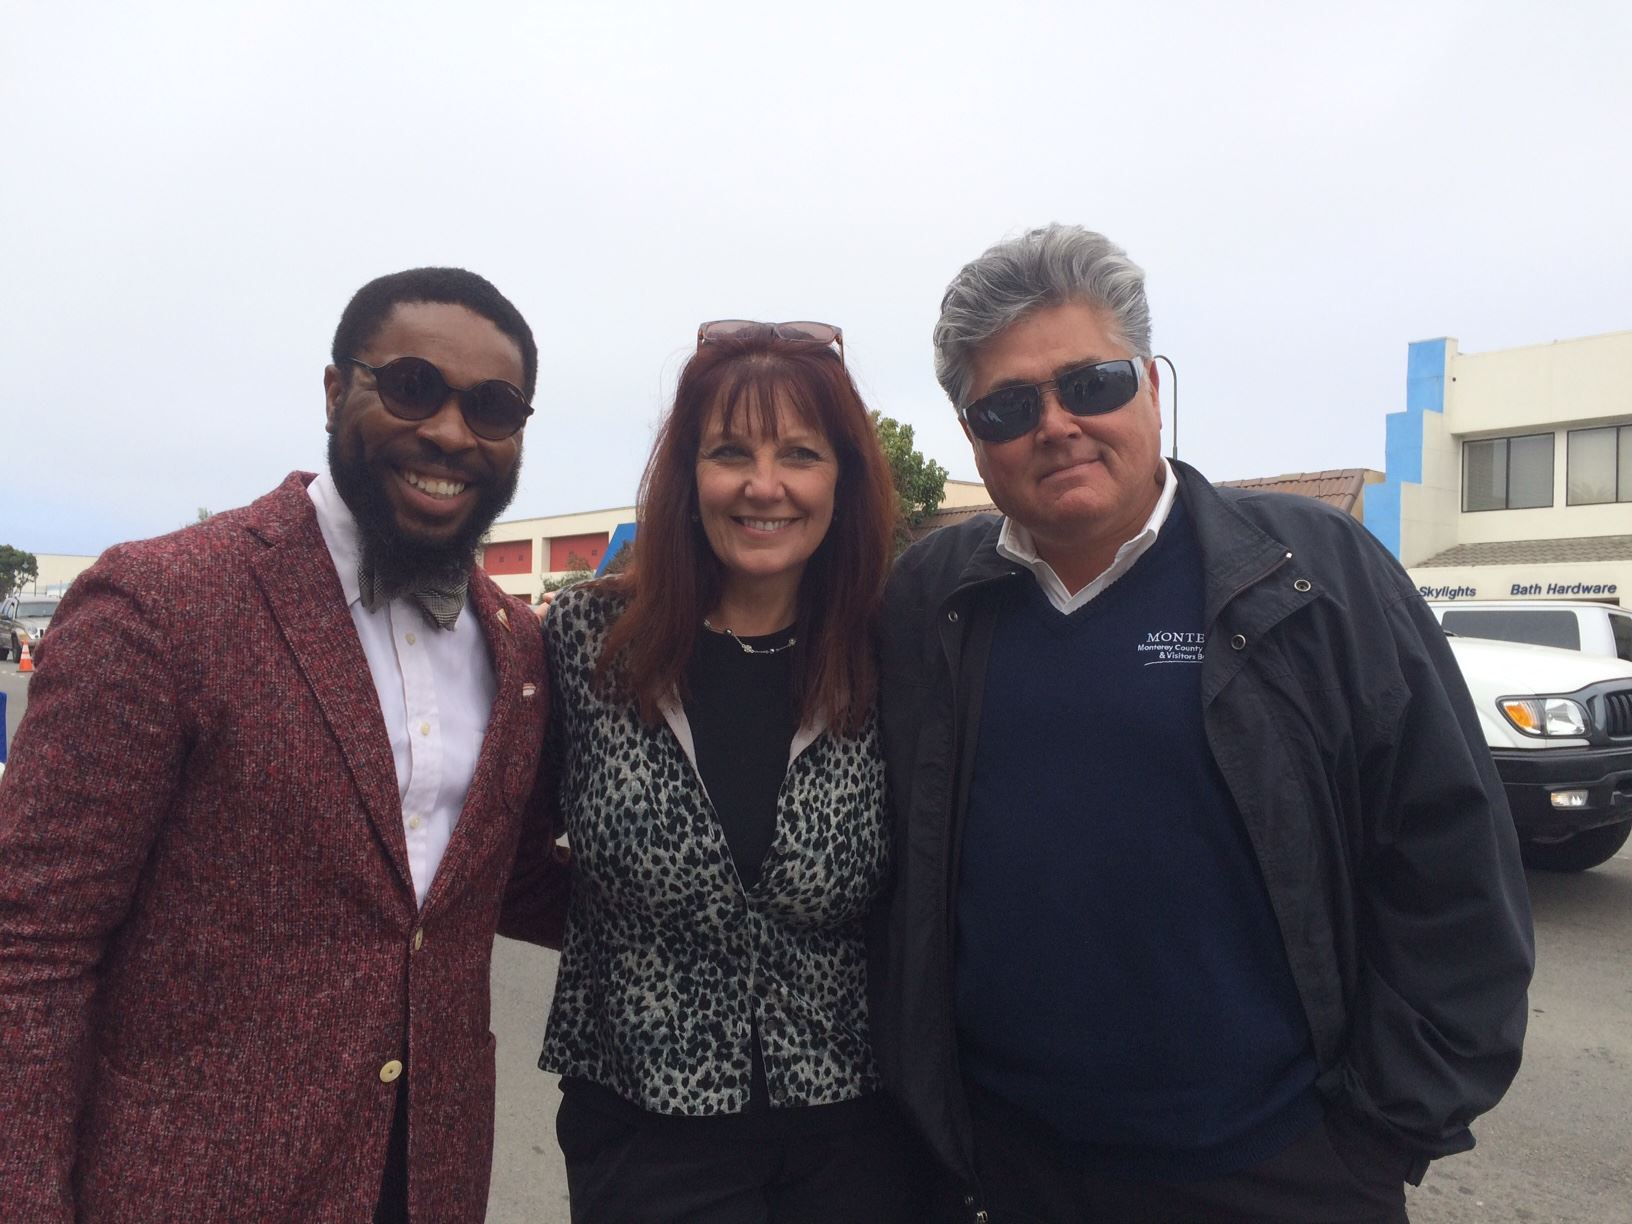 Maddox Haberdasher, style consultant; Michele Allen, Traffic Reporter KSBW-TV and David Marzetti, Local enterainer and MCCVB  judge PARK-ing Day Entries